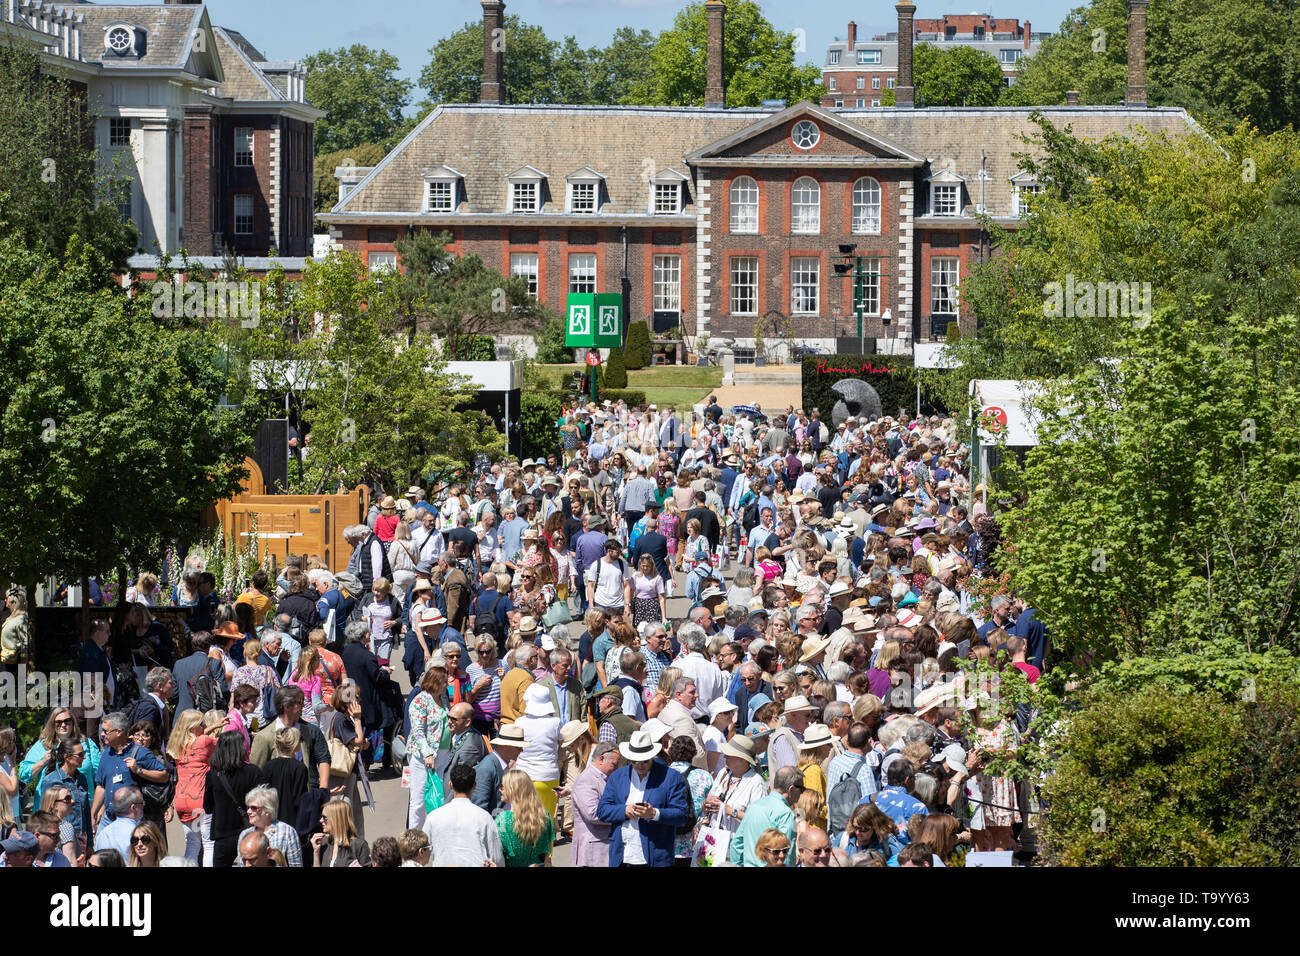 Visitors peruse stands as the doors open to the public at the RHS Chelsea Flower Show at the Royal Hospital Chelsea, London. - Stock Image